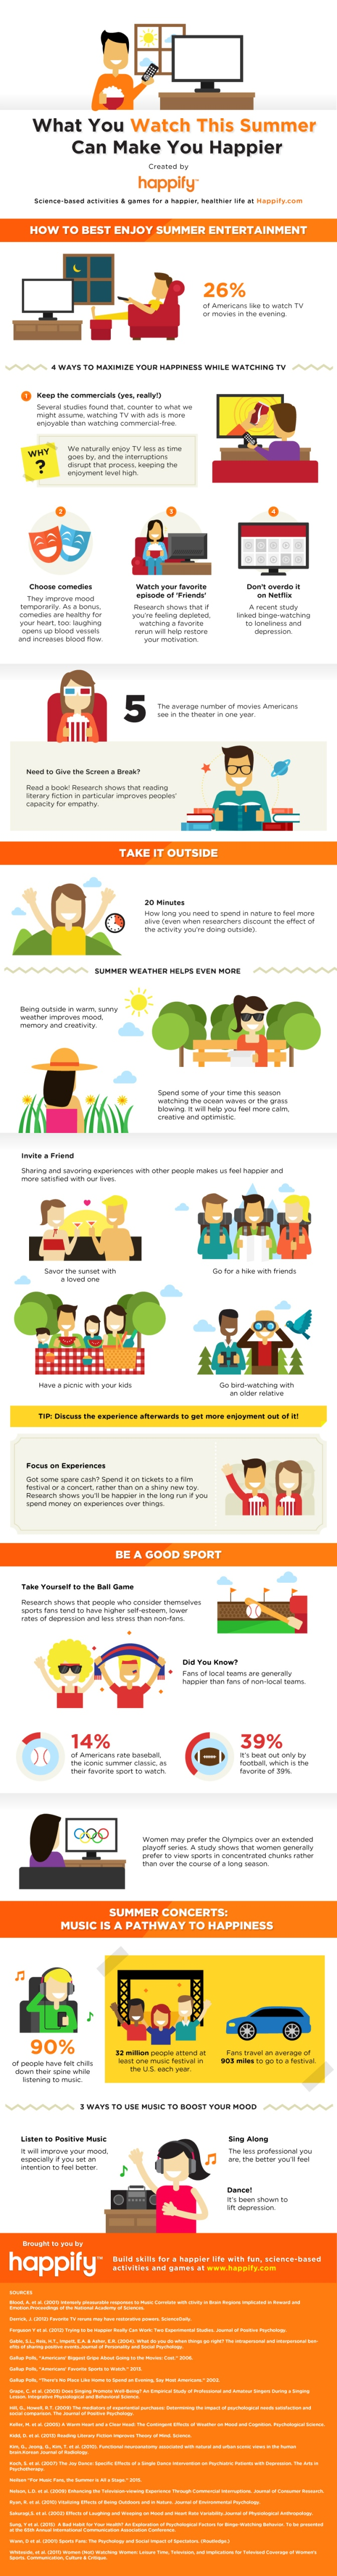 Happify's New Infographic: What You Watch This Summer Can Make You Happier